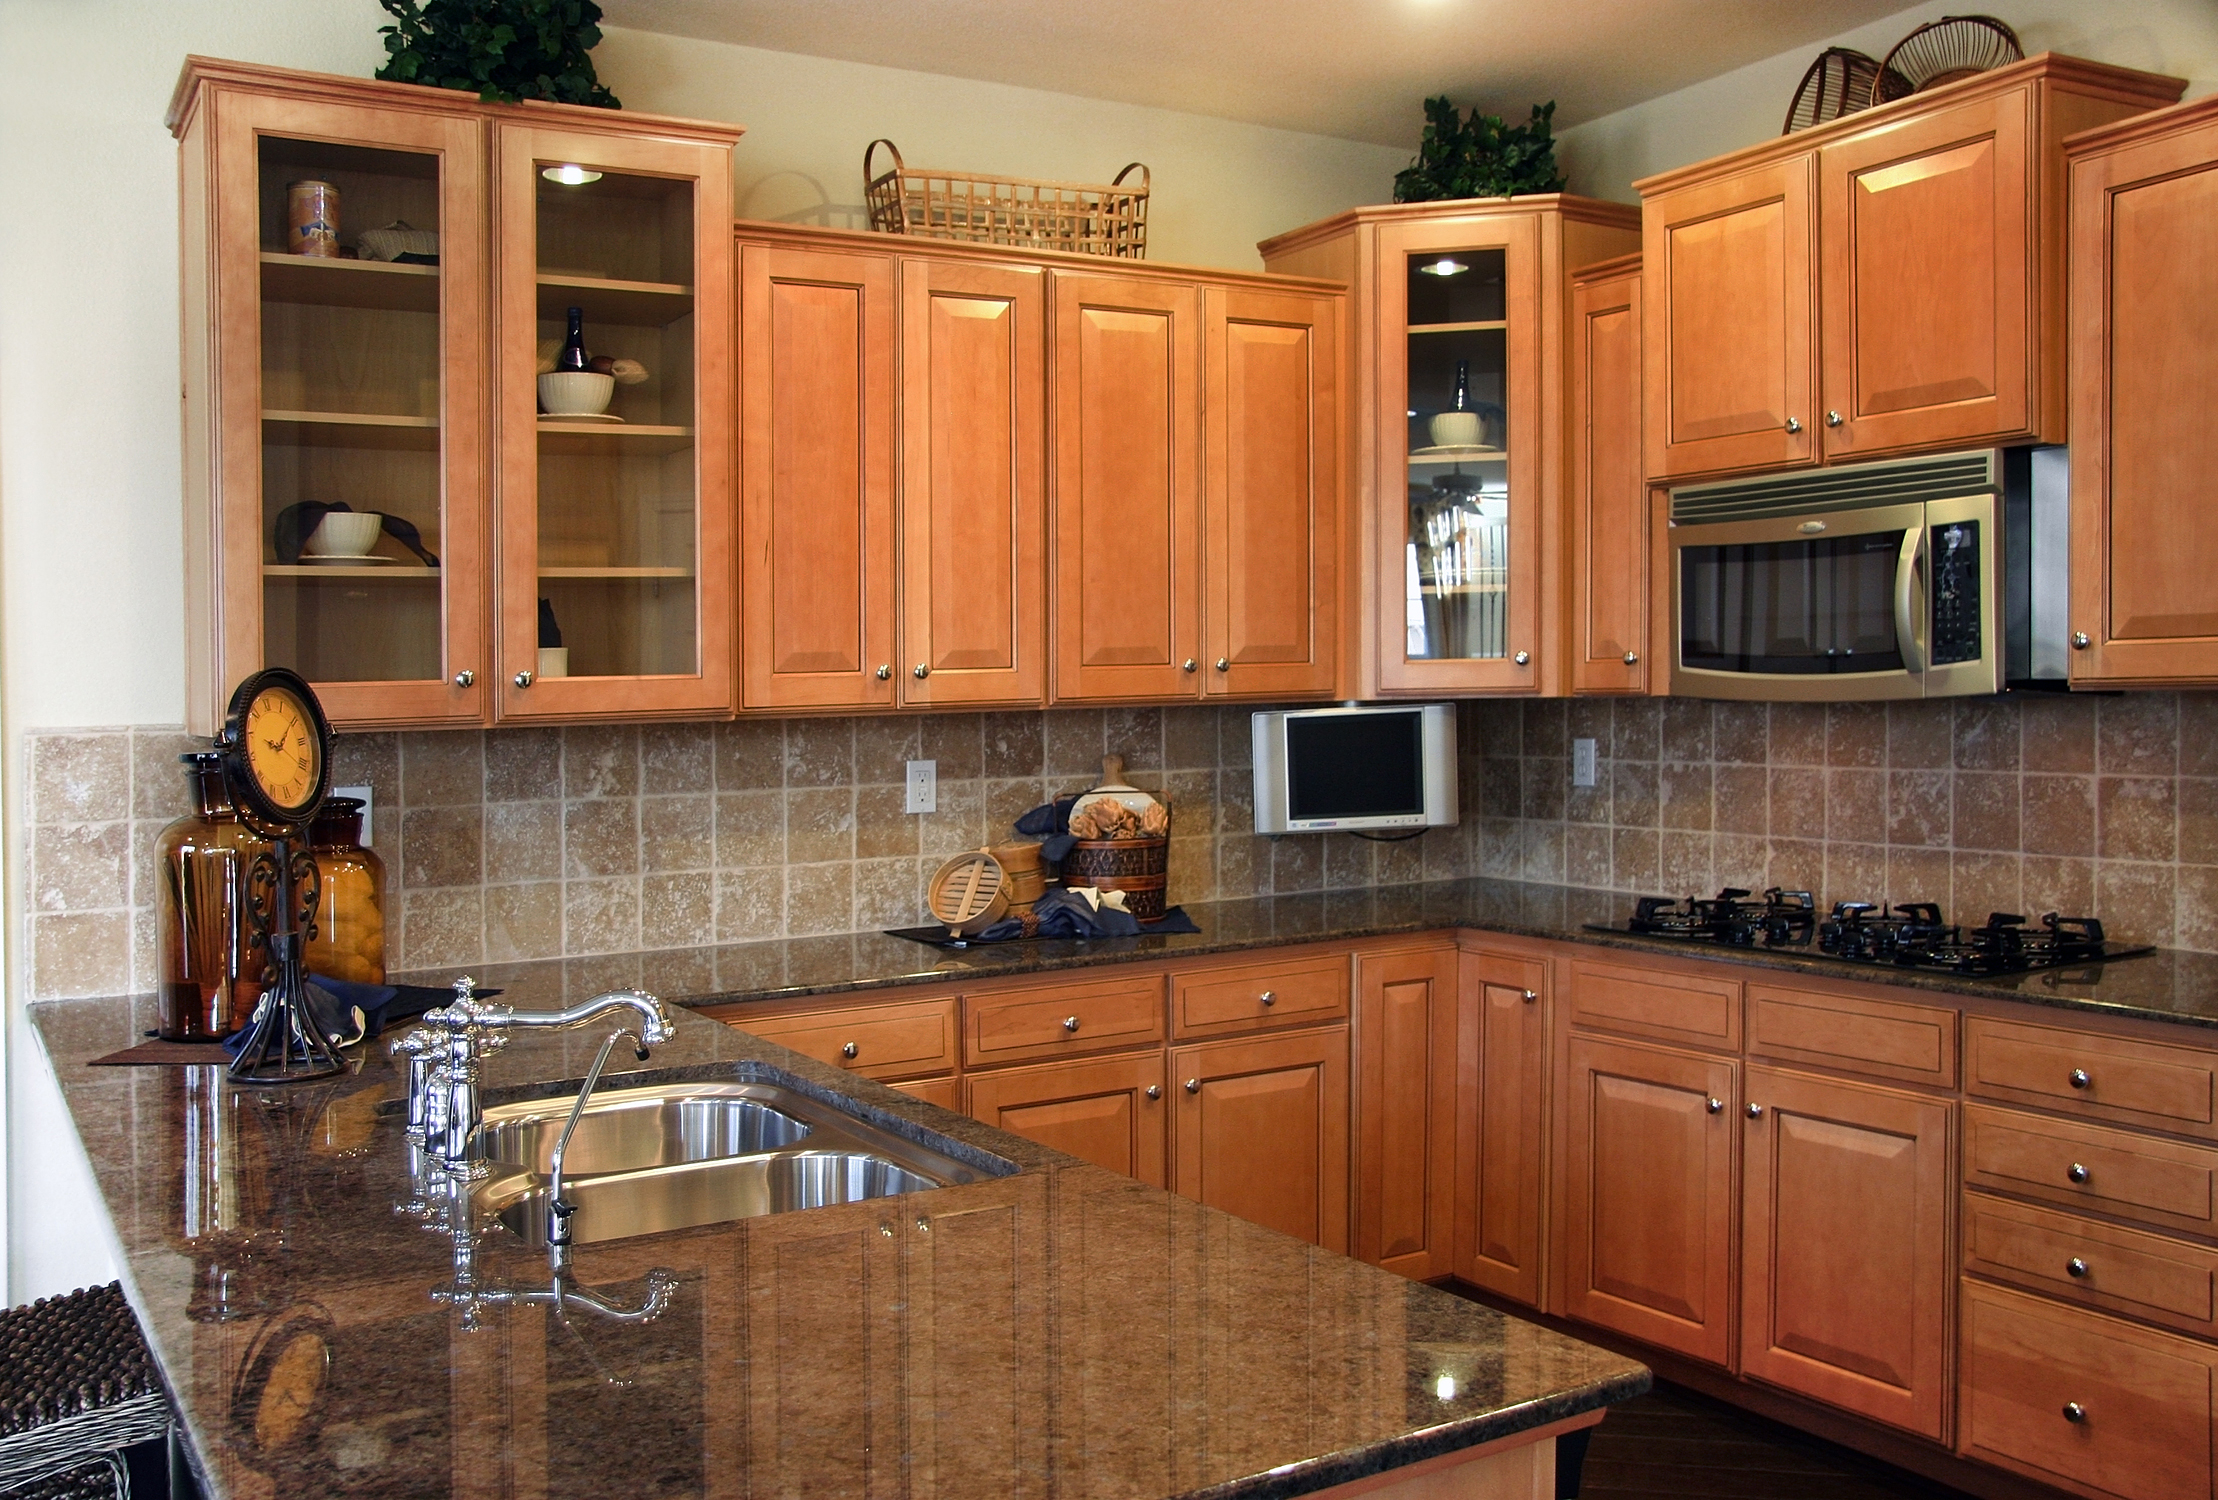 kitchen upgrades small remodeling ideas these 10 could ruin your home s resale value